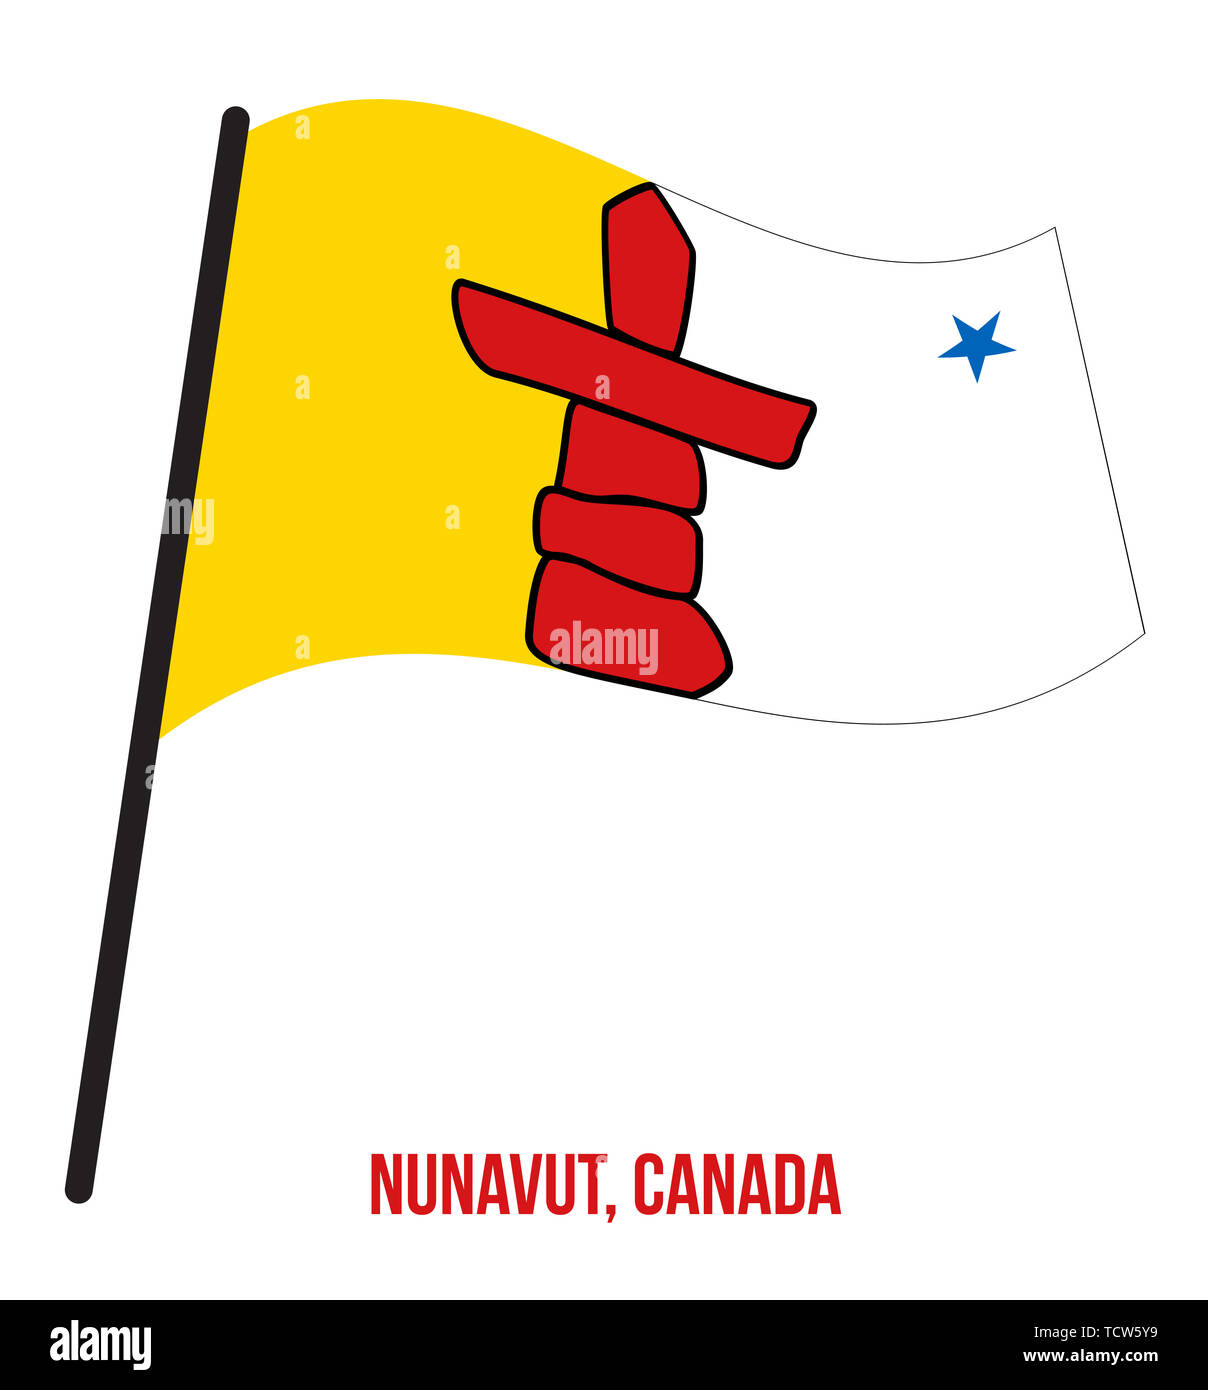 Nunavut Flag Waving Vector Illustration on White Background. Territory Flag of Canada. Correct Size, Proportion and Colors. - Stock Image